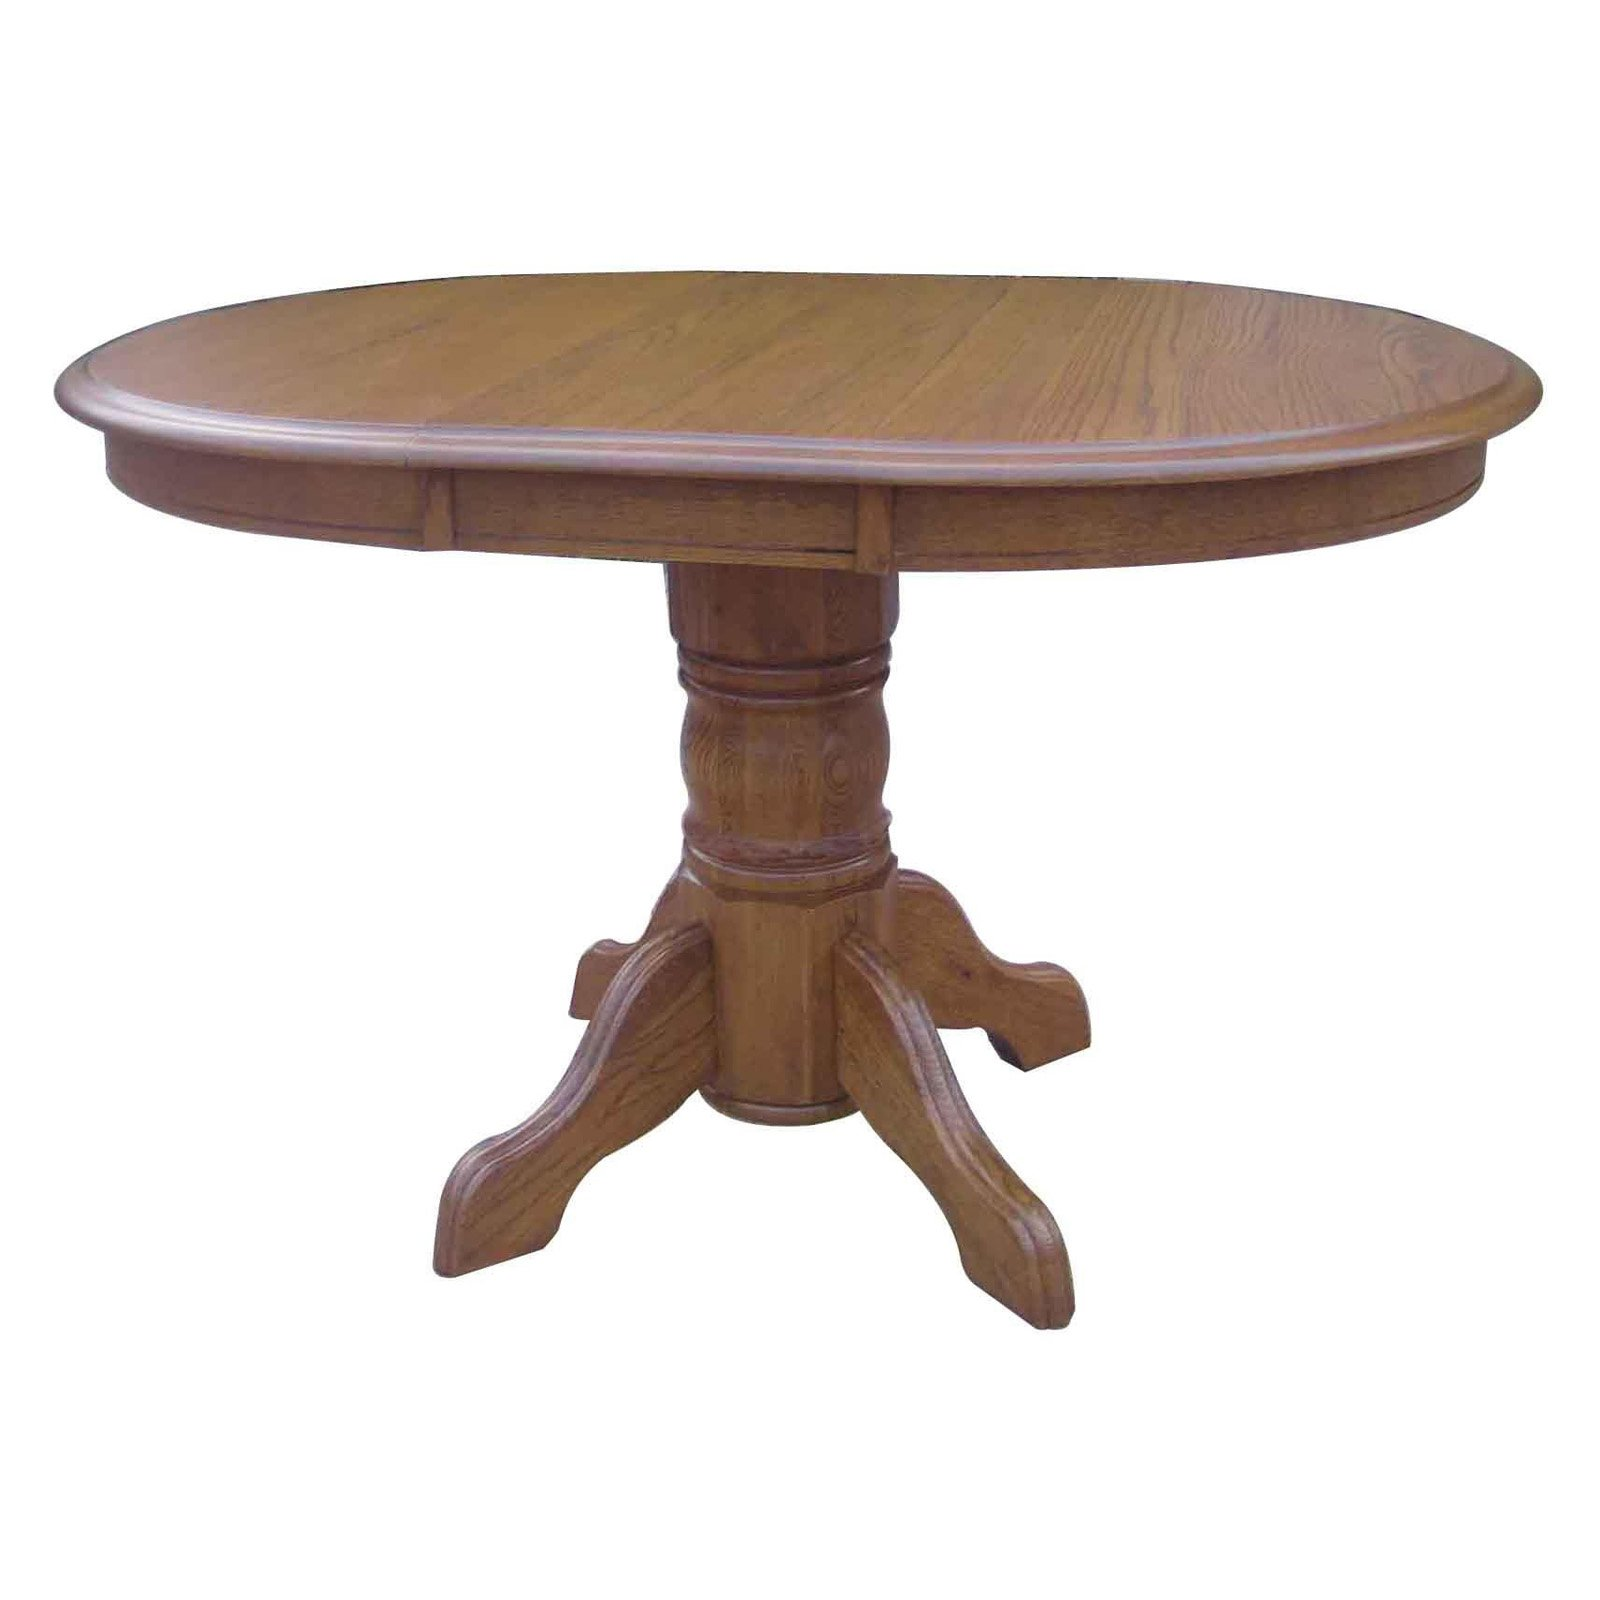 Chelsea Home Sandalwood Pedestal Dining Table by Chelsea Home Furniture LLC.